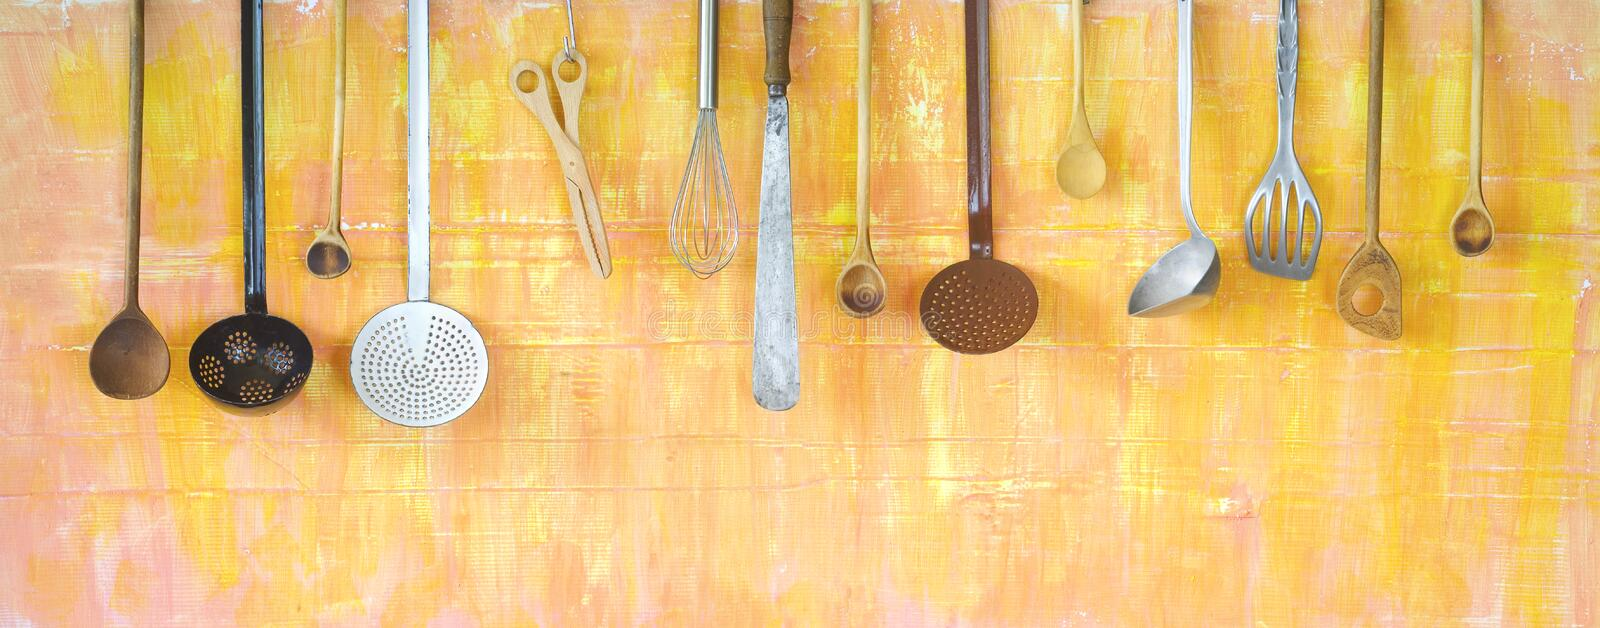 Various kitchen utensils, cooking concept stock images